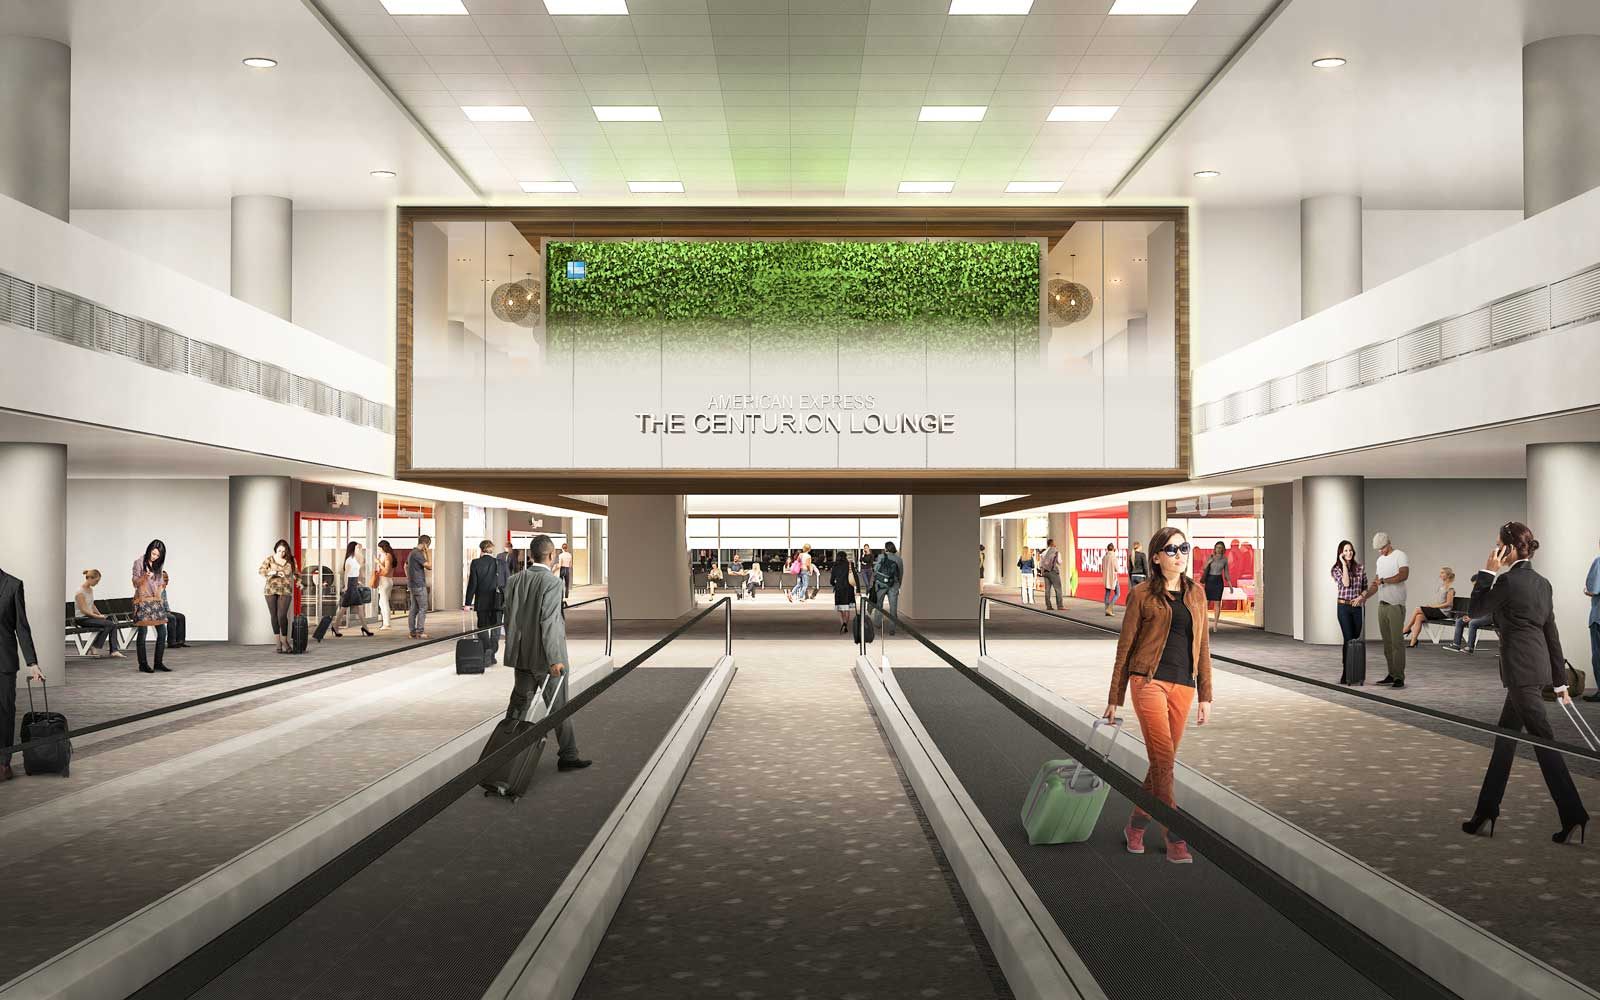 American Express Is Bringing Centurion Lounge Luxury to Denver Airport